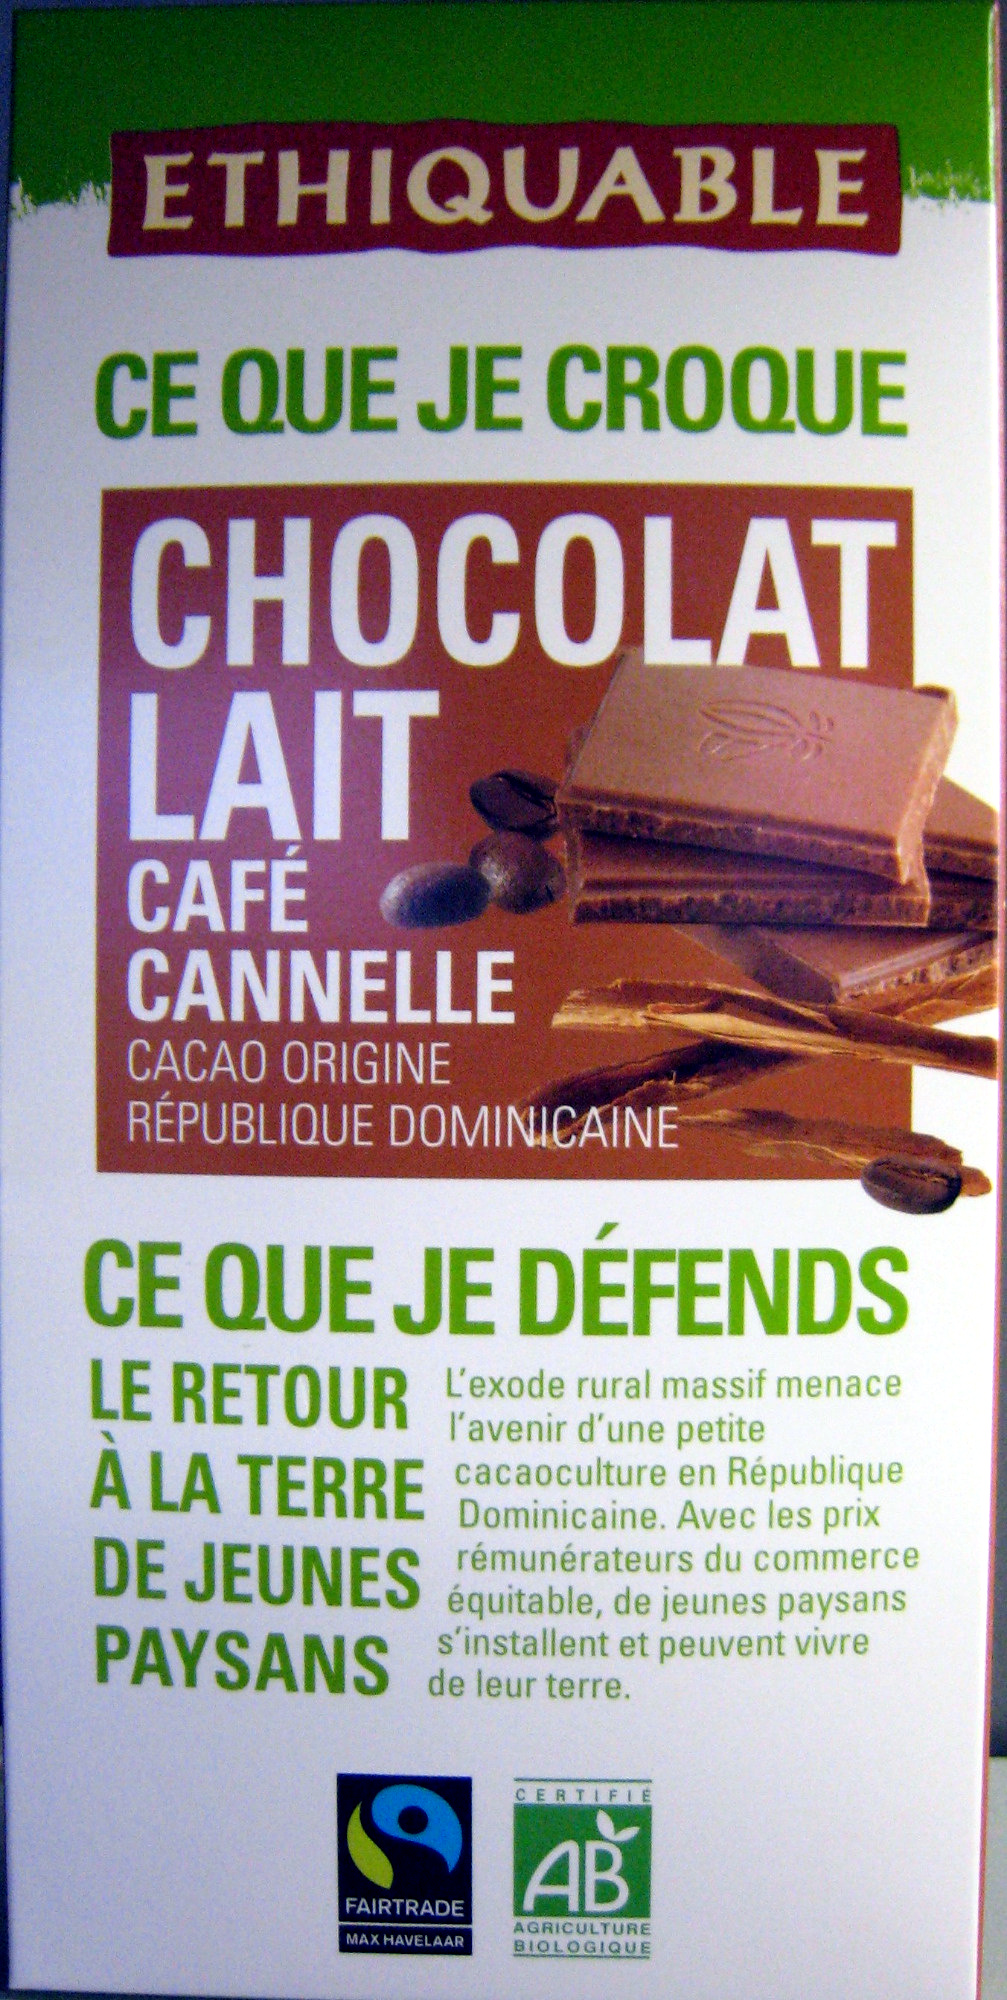 Chocolat au lait café cannelle Cacao origine République Dominicaine Ethiquable - Product